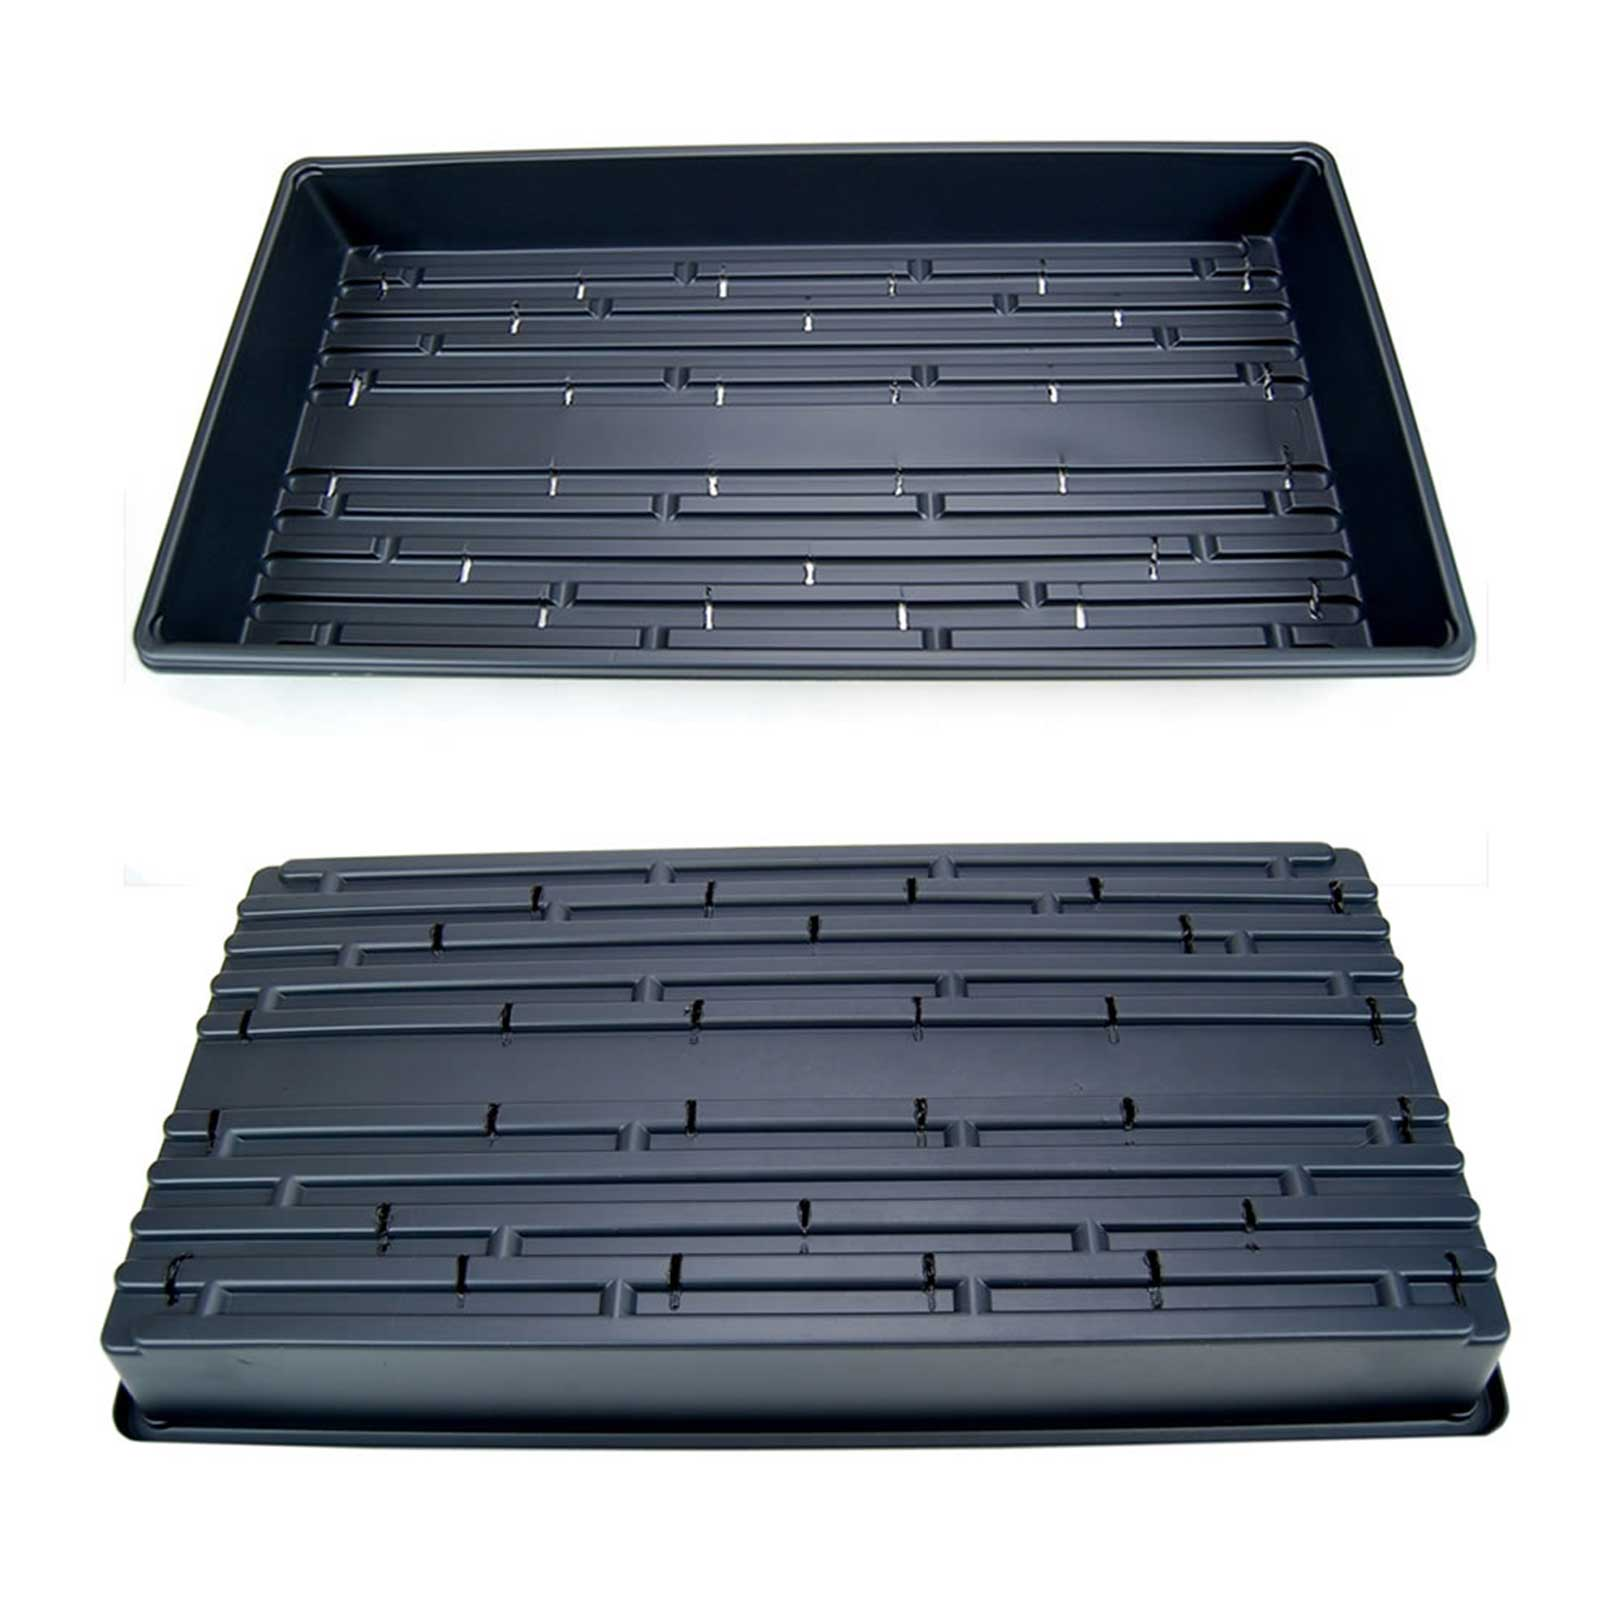 Image of 100 Black Plant Greenhouse Trays - Garden, Wheatgrass, Microgreens